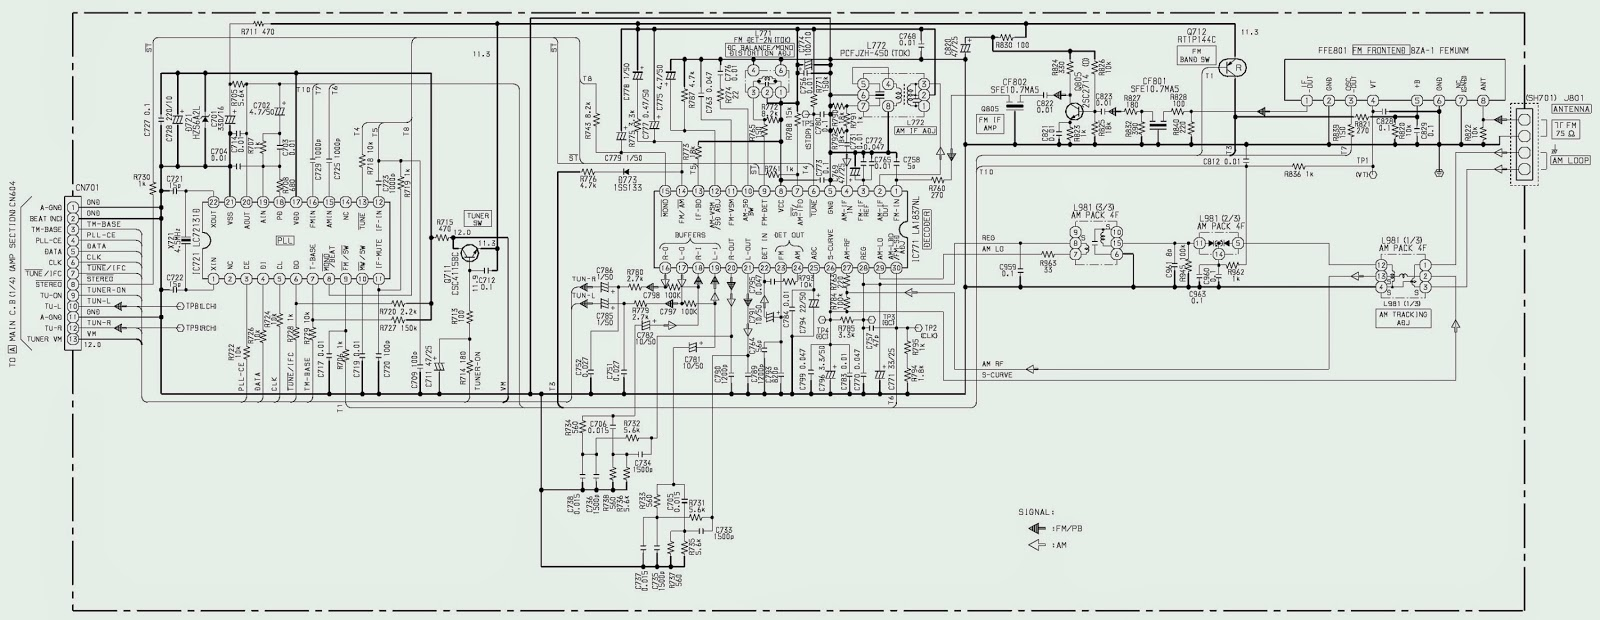 Aiwa Stereo Wiring Harness Diagram Vehicle Diagrams Various Xh A Pact Disc Rh Jokcei Tripa Co